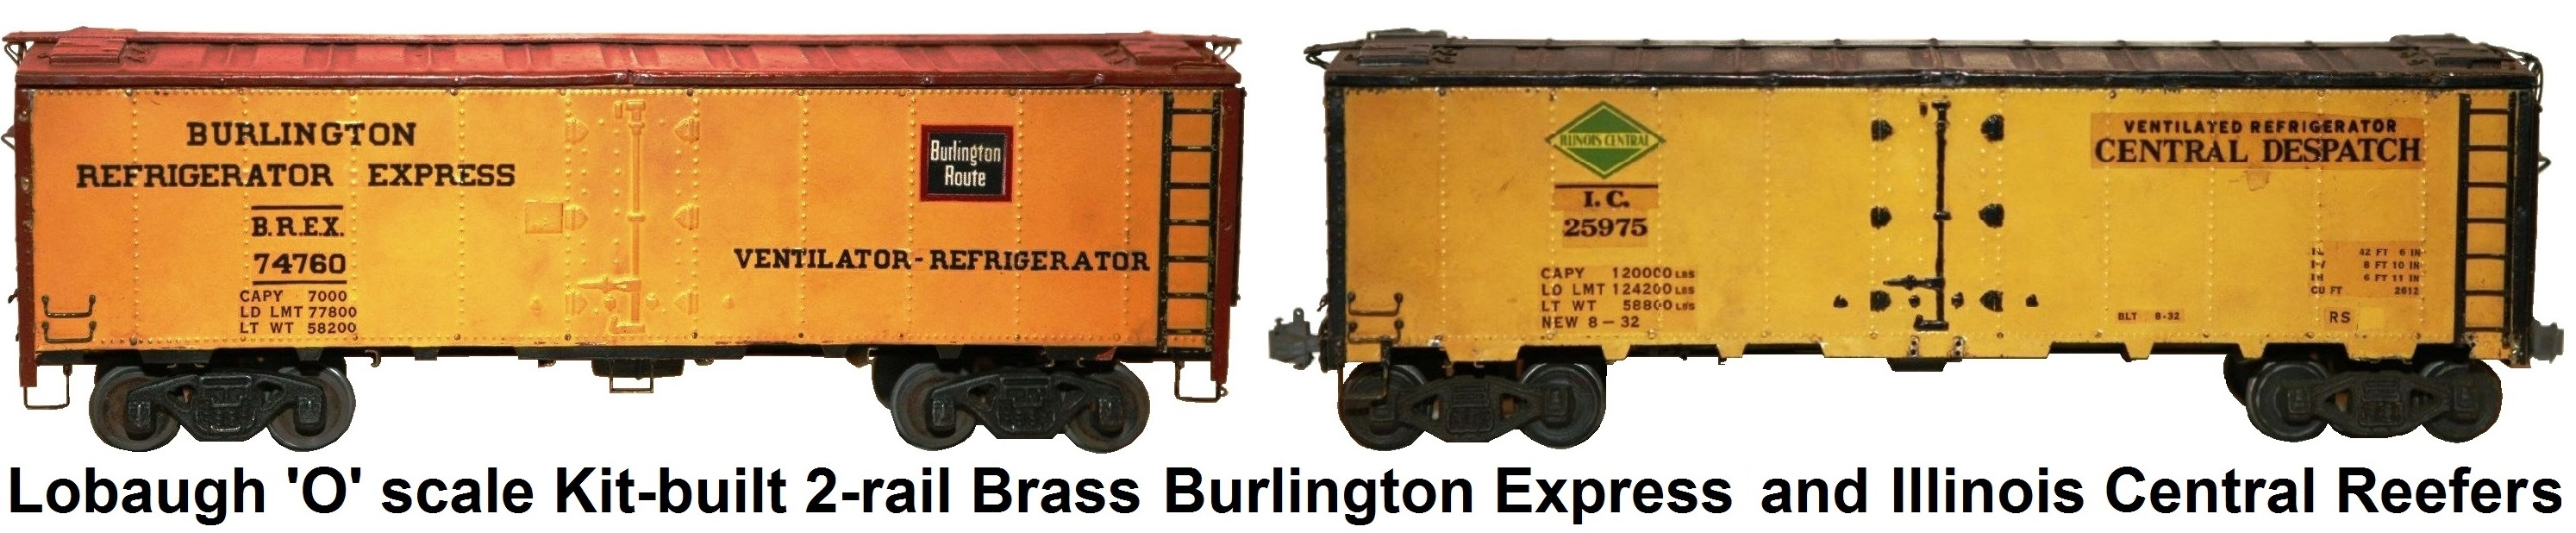 Lobaugh 'O' scale 2-rail kit built freight cars - includes #74765 Burlington Express Reefer, #62456 AT&SF Gondola, #25975 Illinois Central Reefer and skeleton Log Flat car